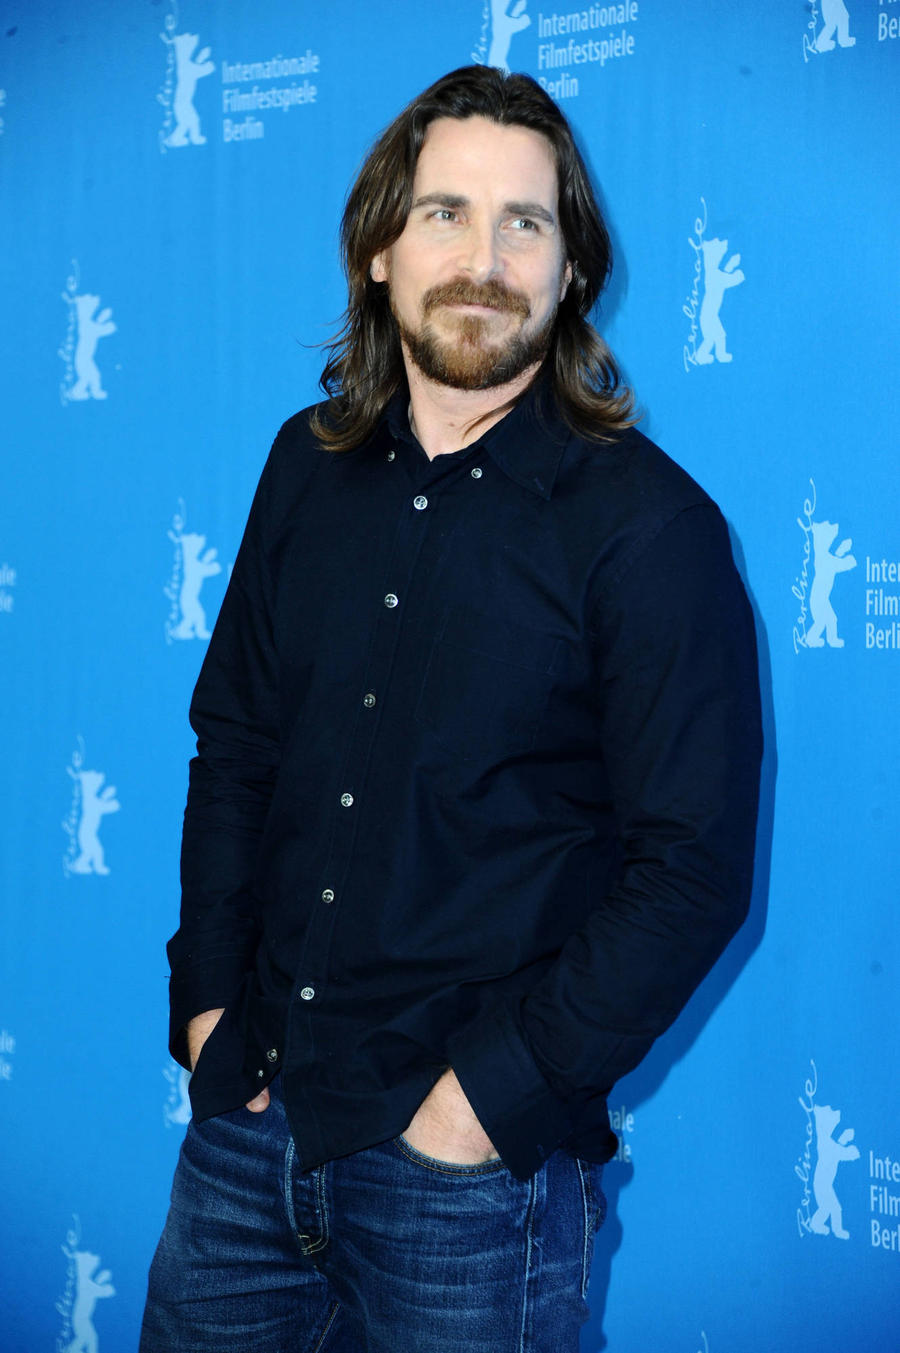 Christian Bale's 'Vanity Destroyed' Filming Knight Of Cups